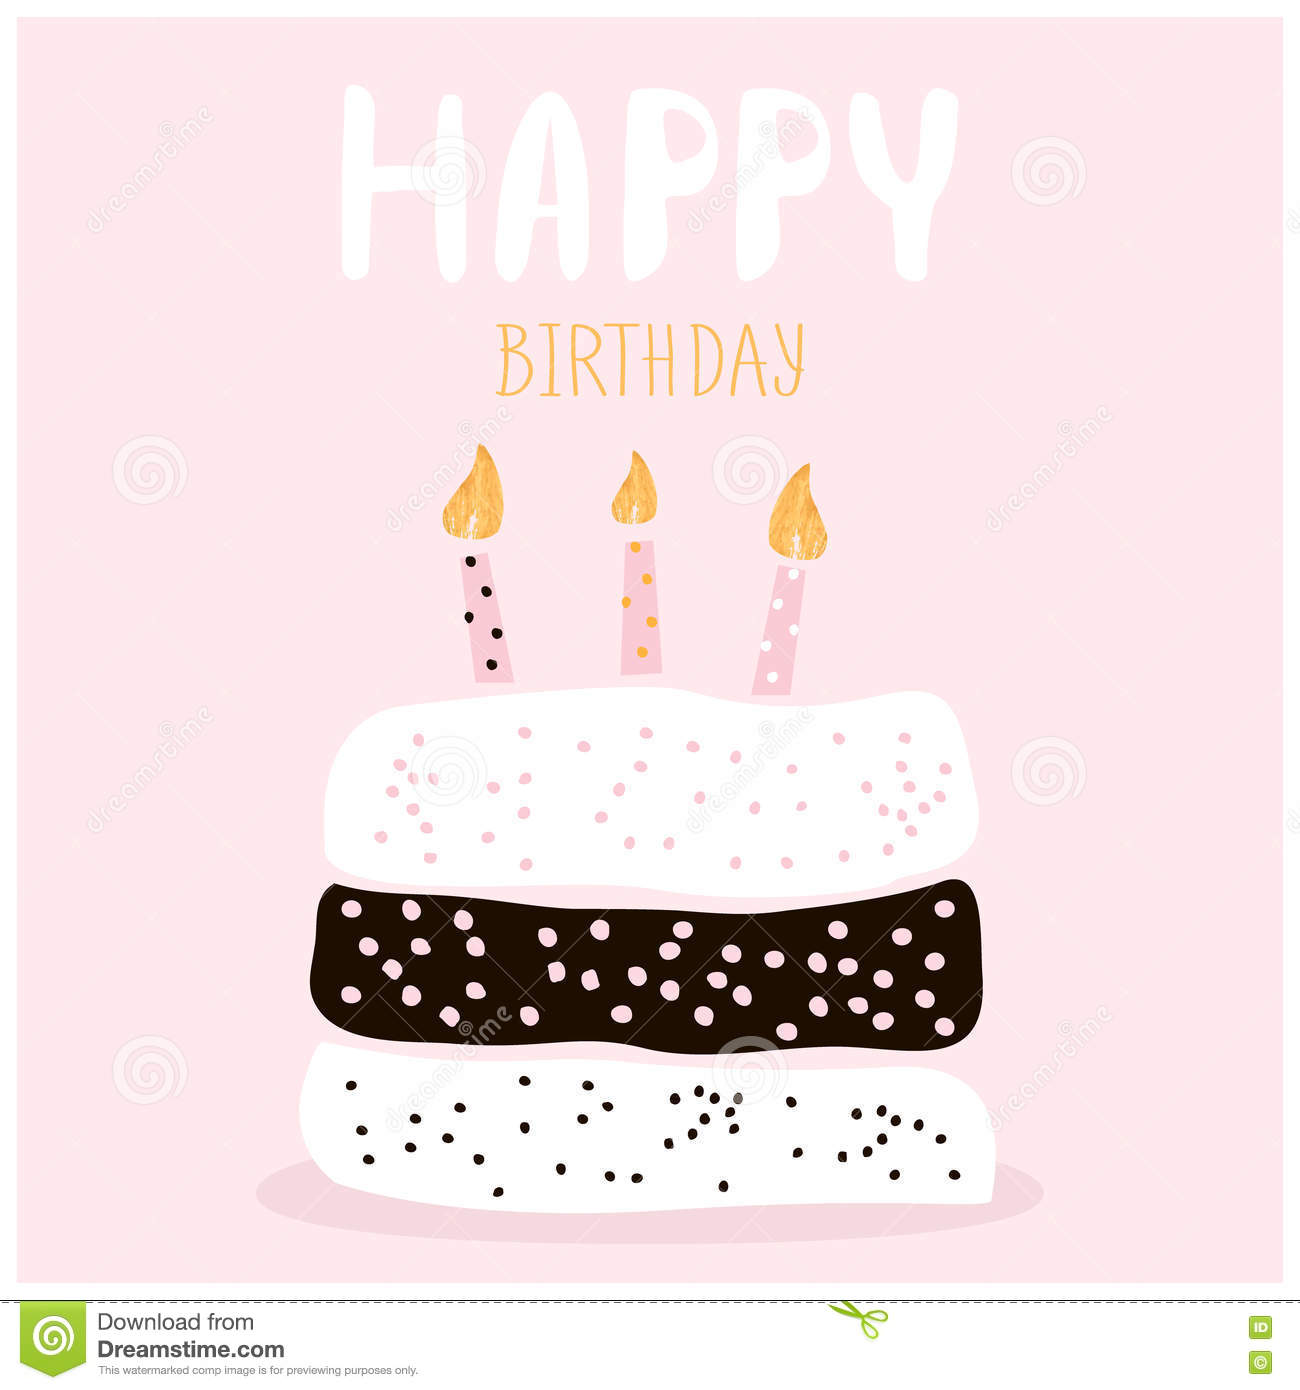 Happy Birthday Cake Greeting Card Vector Image 46551076 – Birthday Cake Card Template